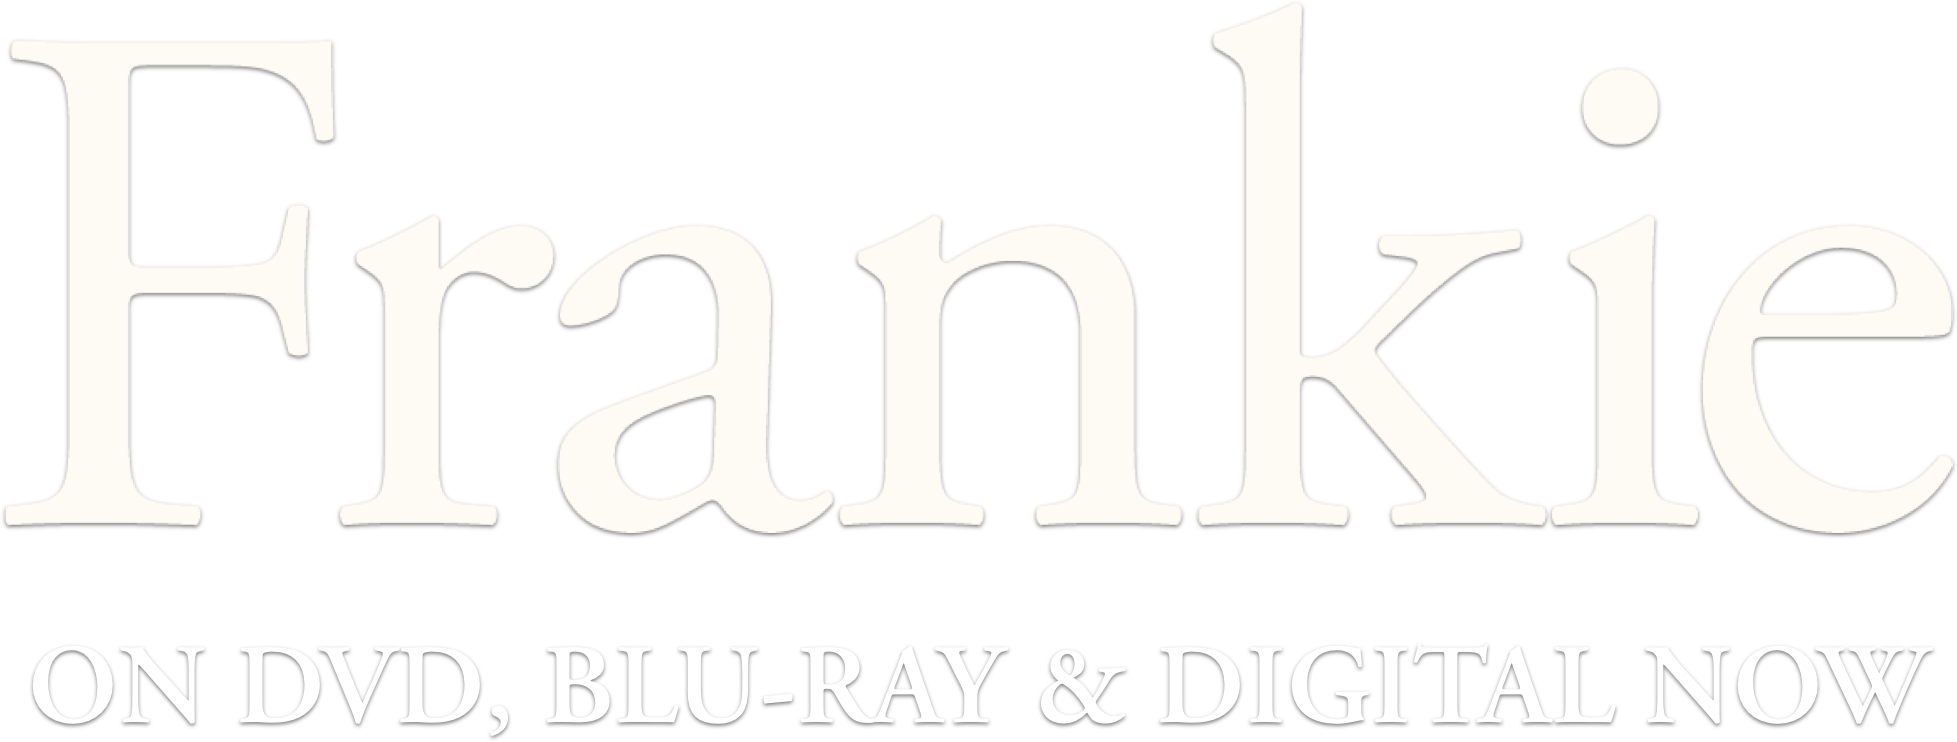 Title or logo for Frankie